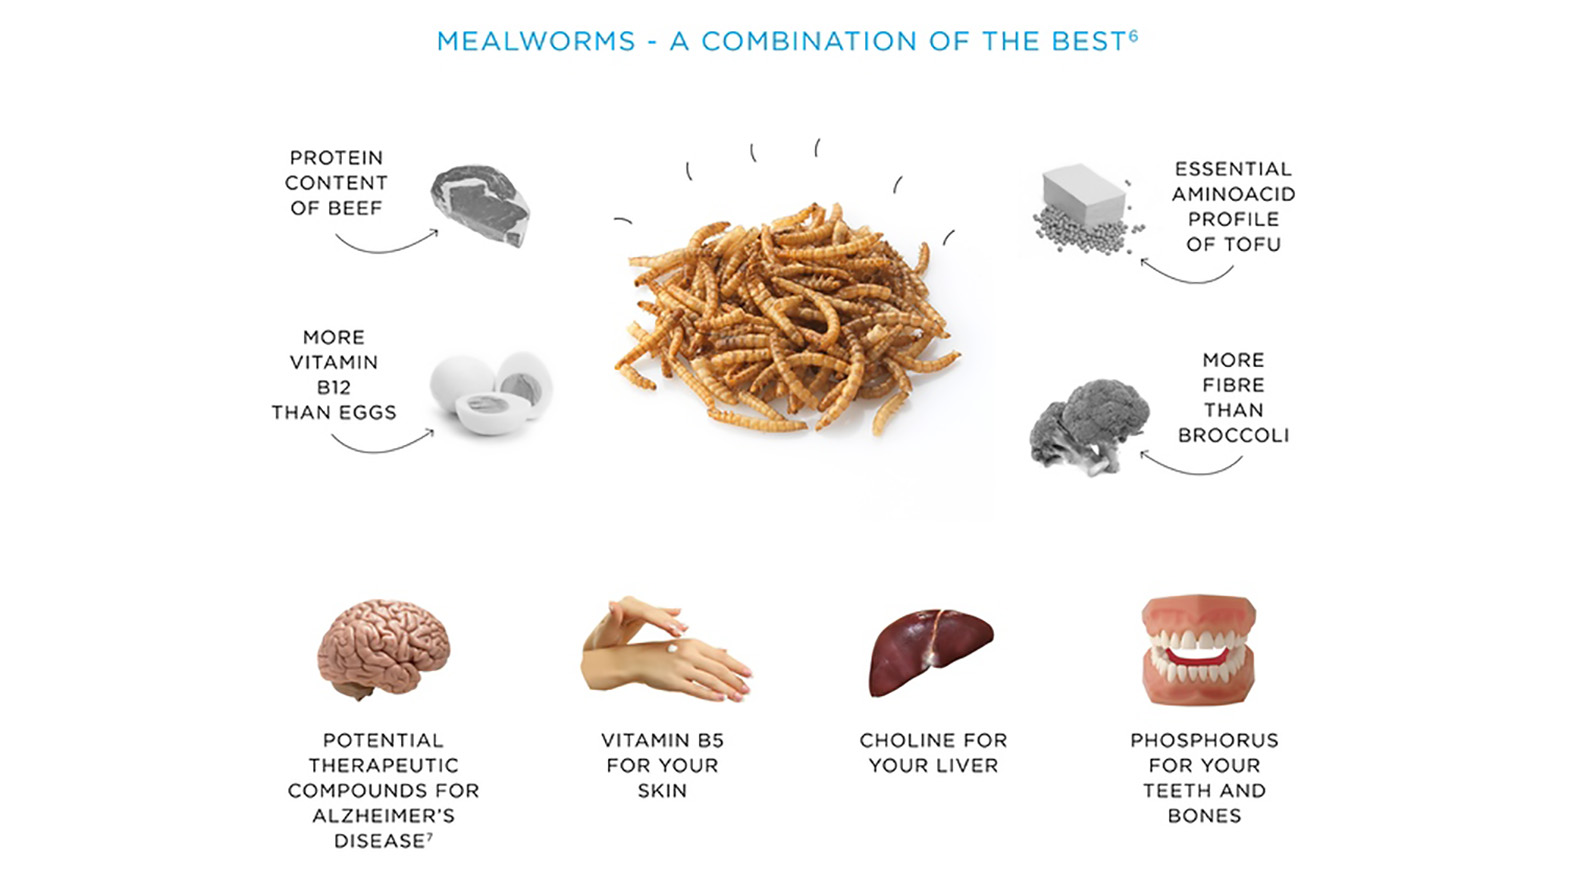 mealworms report Learn all about mealworms for birds, including what birds eat them and how to raise your own to offer birds a healthy treat.